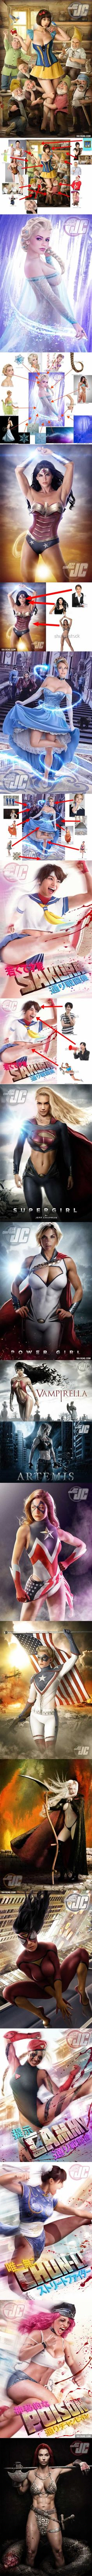 These Sexy Well-Known Characters Are Digitally Composited… By Stock Photos?! (Artist: Jeff Chapman)